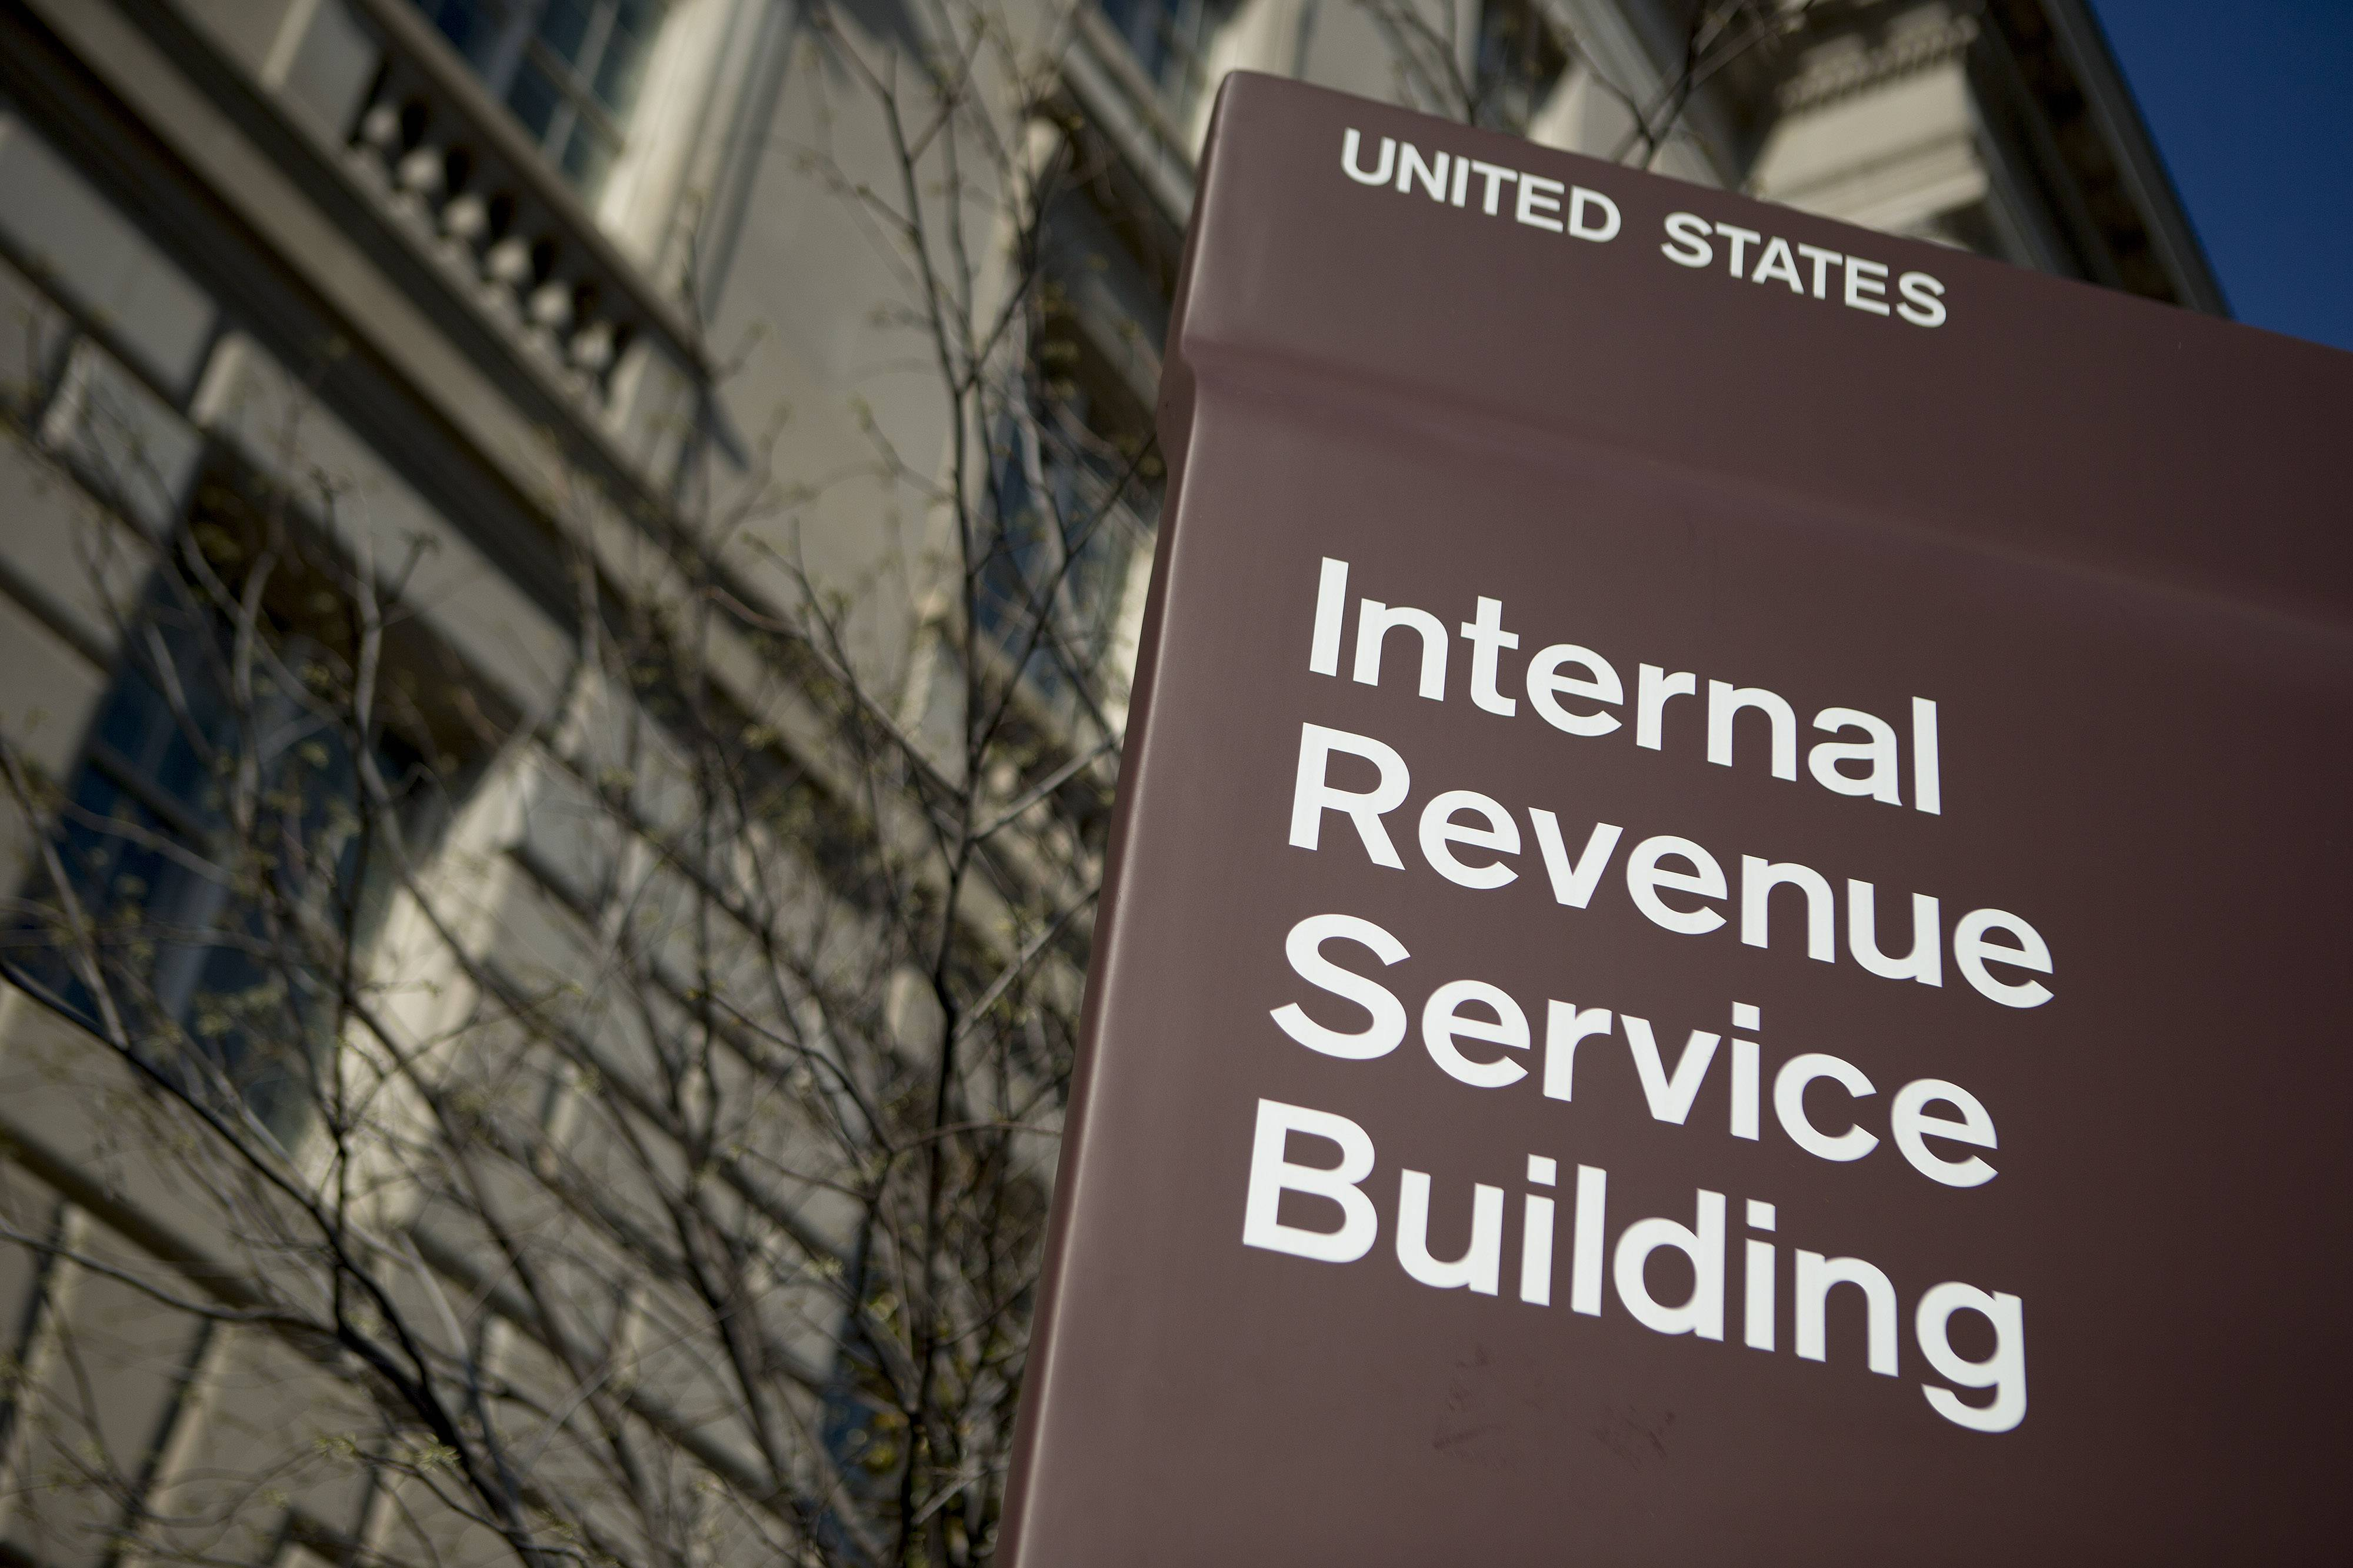 Budget cuts and new responsibilities are straining the Internal Revenue Service's ability to police tax returns. This year, the IRS will have fewer agents auditing returns than at any time since at least the 1980s.